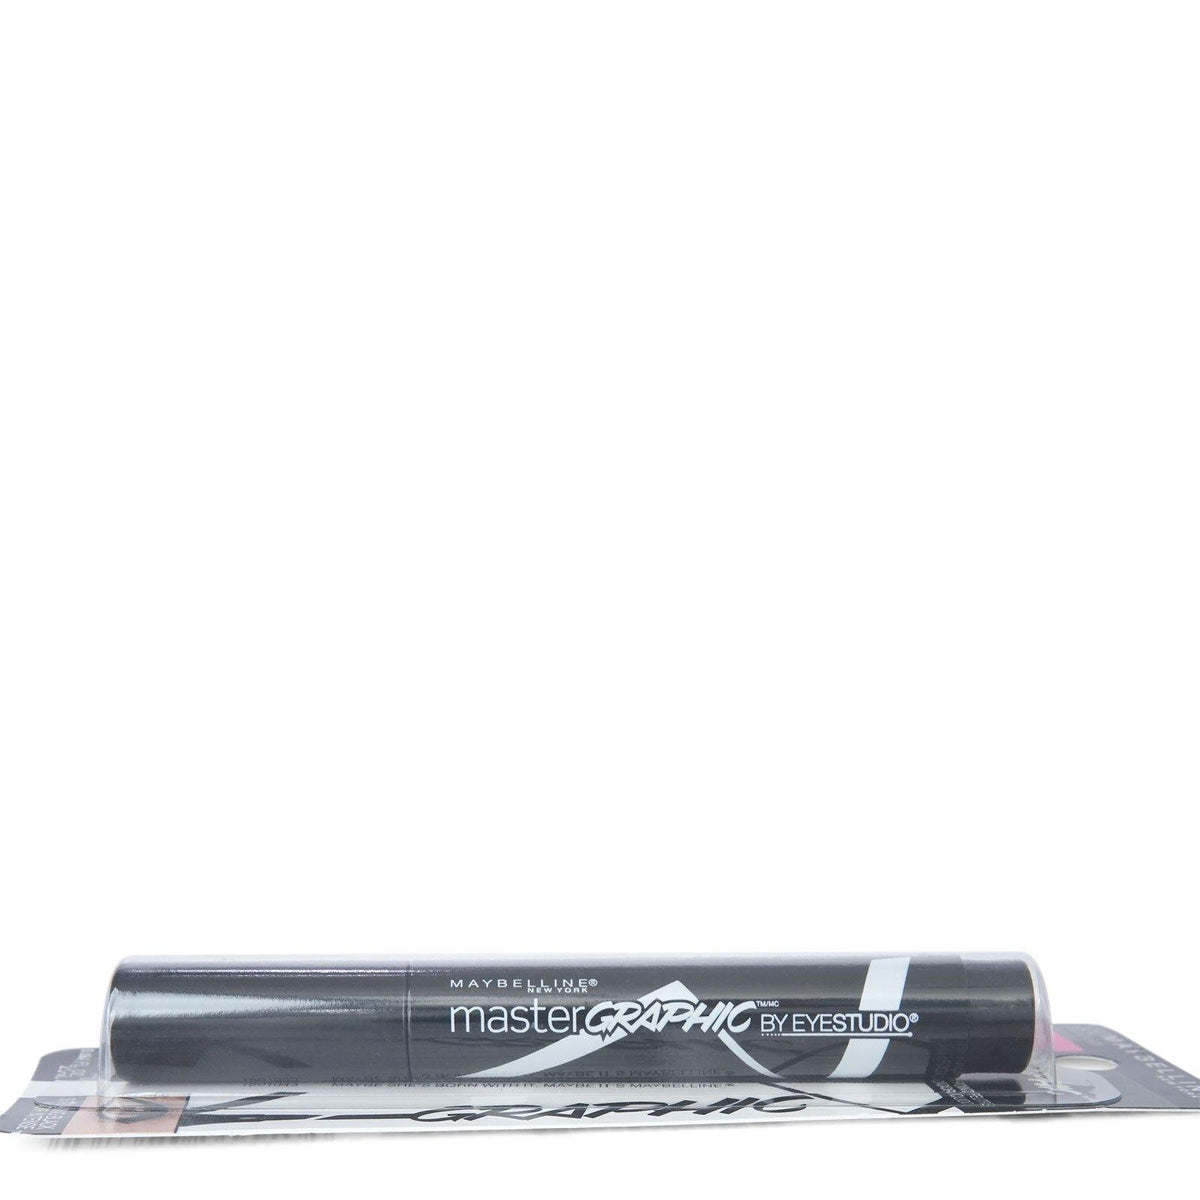 Maybelline Master Graphic Liquid Eyeliner - Striking Black (24/cs)